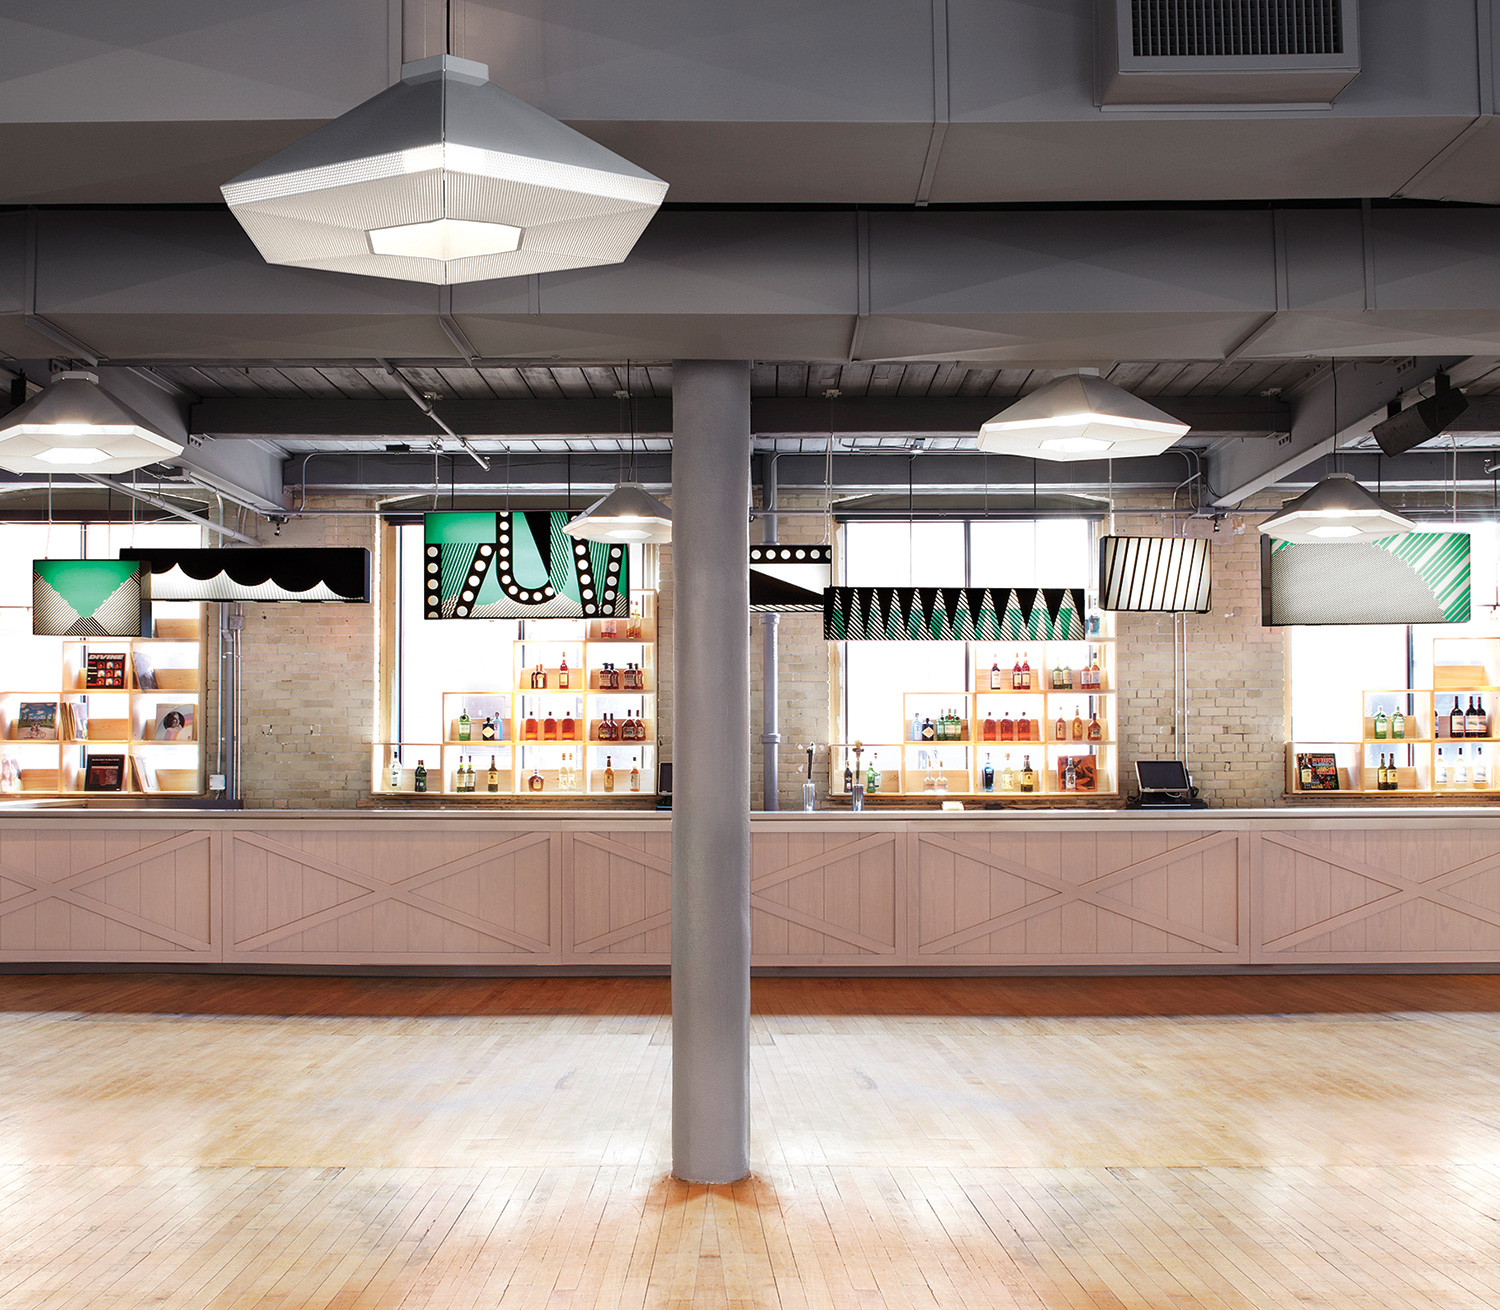 2nd Floor (Event Space): Vaguely recalling a marketplace, vendor stalls typically made from reclaimed wood are replaced by a bespoke, 11-metre-long bar clad in stained Carolina pine. Instead of flashing signs, flags and canopies are graphic-laden light boxes (by Ben Motz and made by Kubik) and hexagonal pendants made of perforated metal (by Jonathan Sabine).